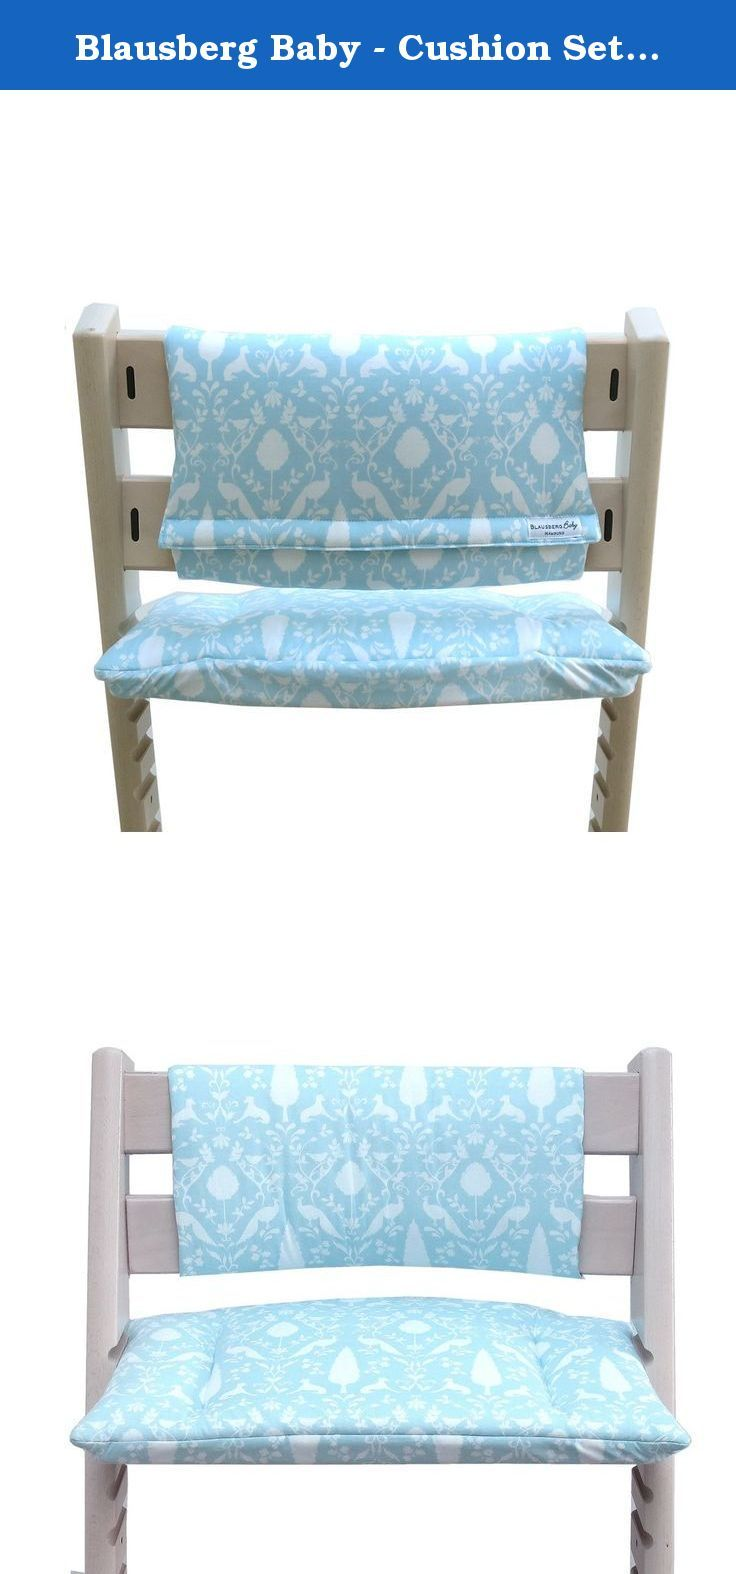 Stokke high chair blue - Blausberg Baby Cushion Set Junior For Tripp Trapp High Chair Of Stokke Turquoise Oxford